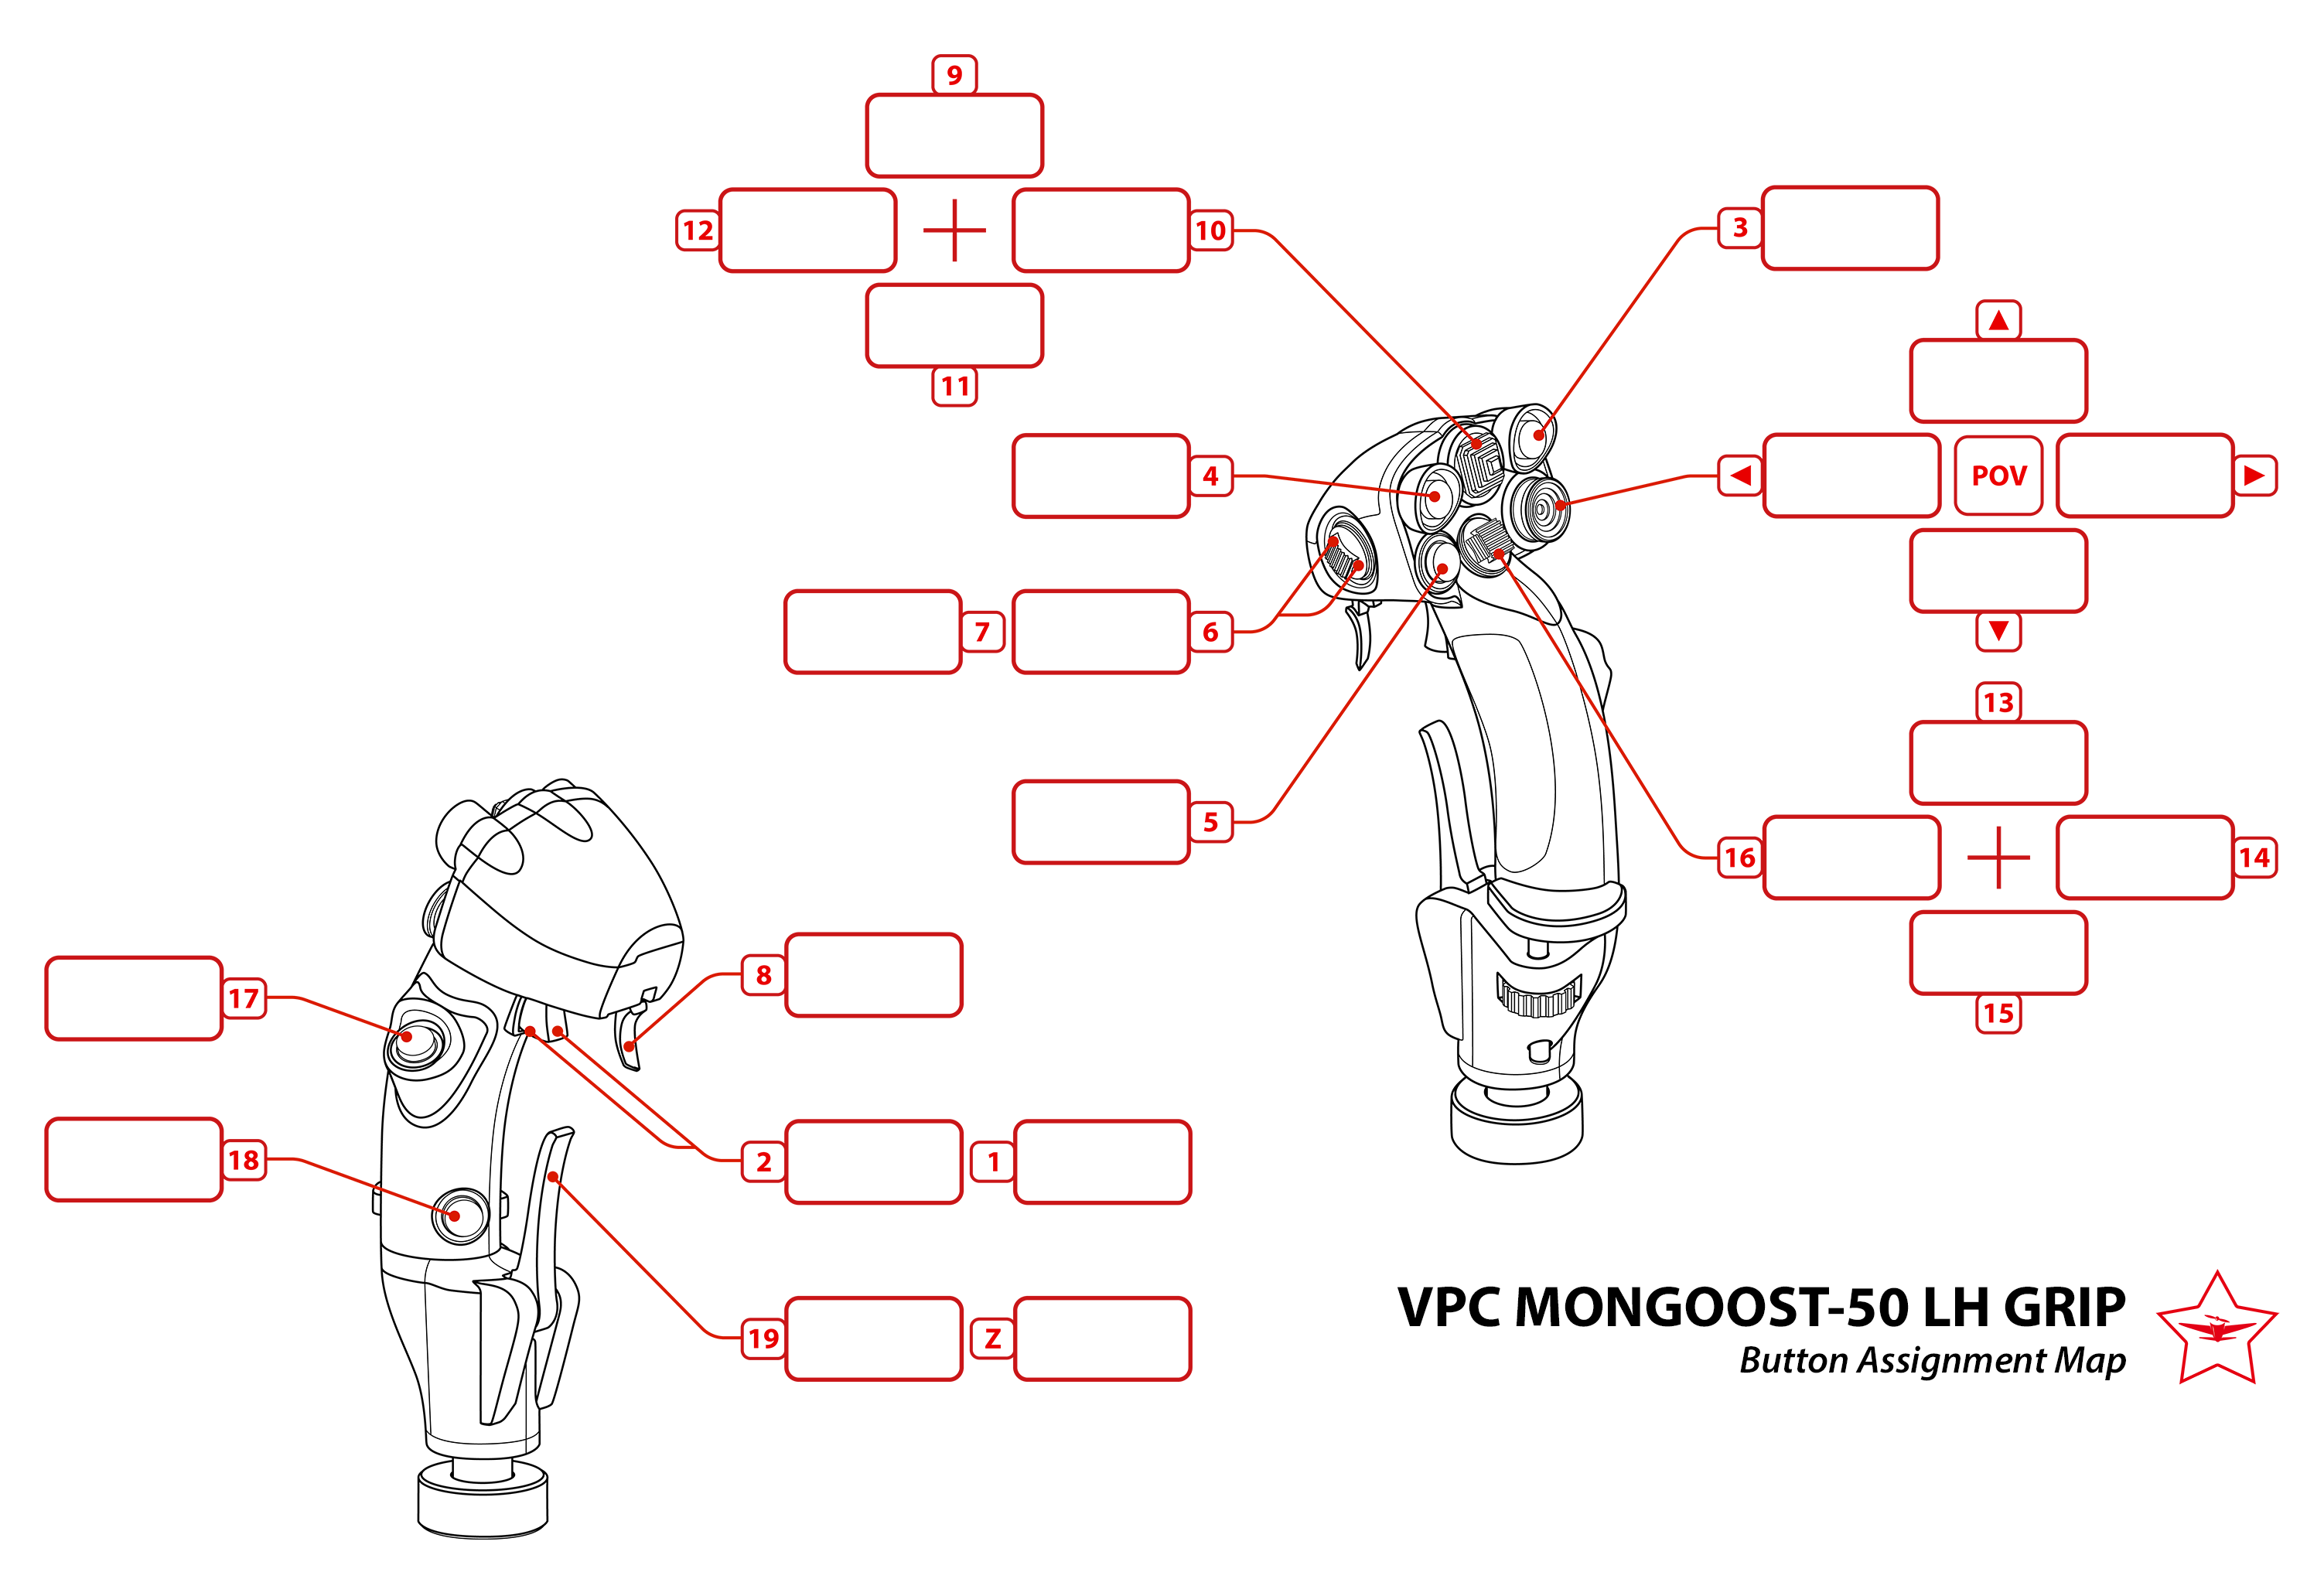 Introducing The Vpc Mongoost 50 Ed Forums Mongoose Central Locking Wiring Diagram This Image Has Been Resized Click Bar To View Full Original Is Sized 3005x2064